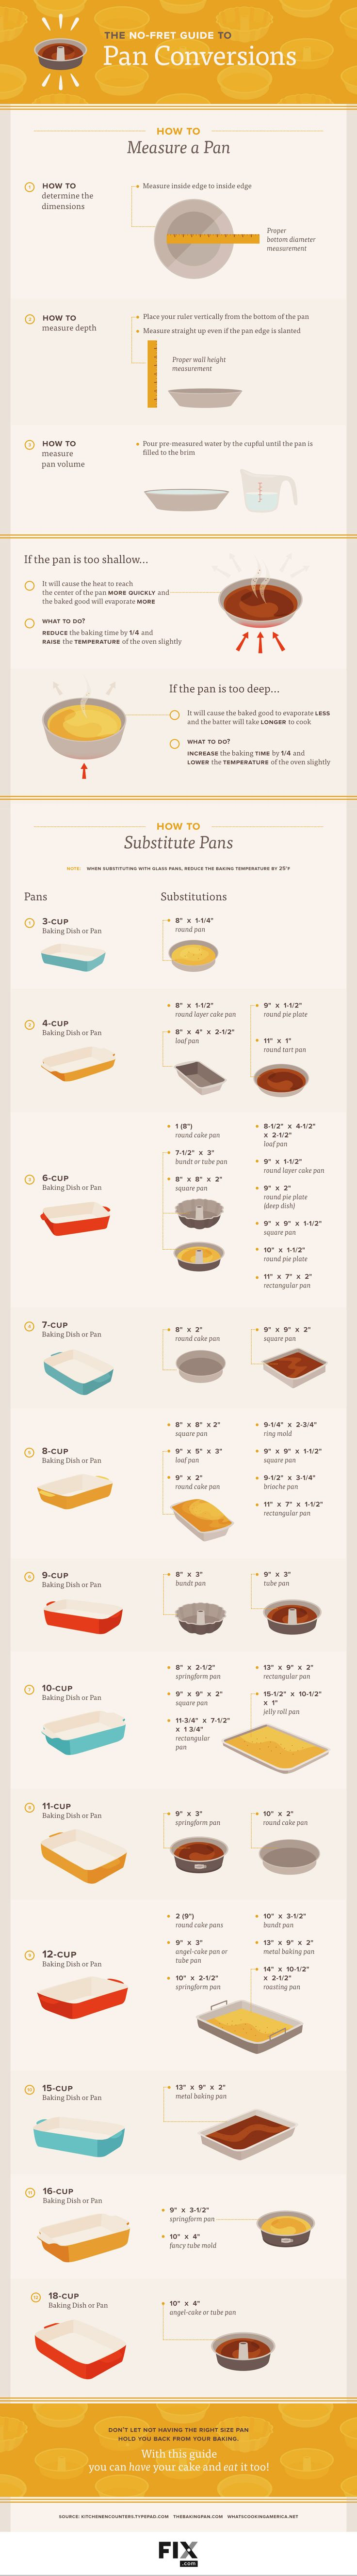 No-Fret Guide to Pan Conversions by fix #Infographic #Cooking #Pan_Conversions